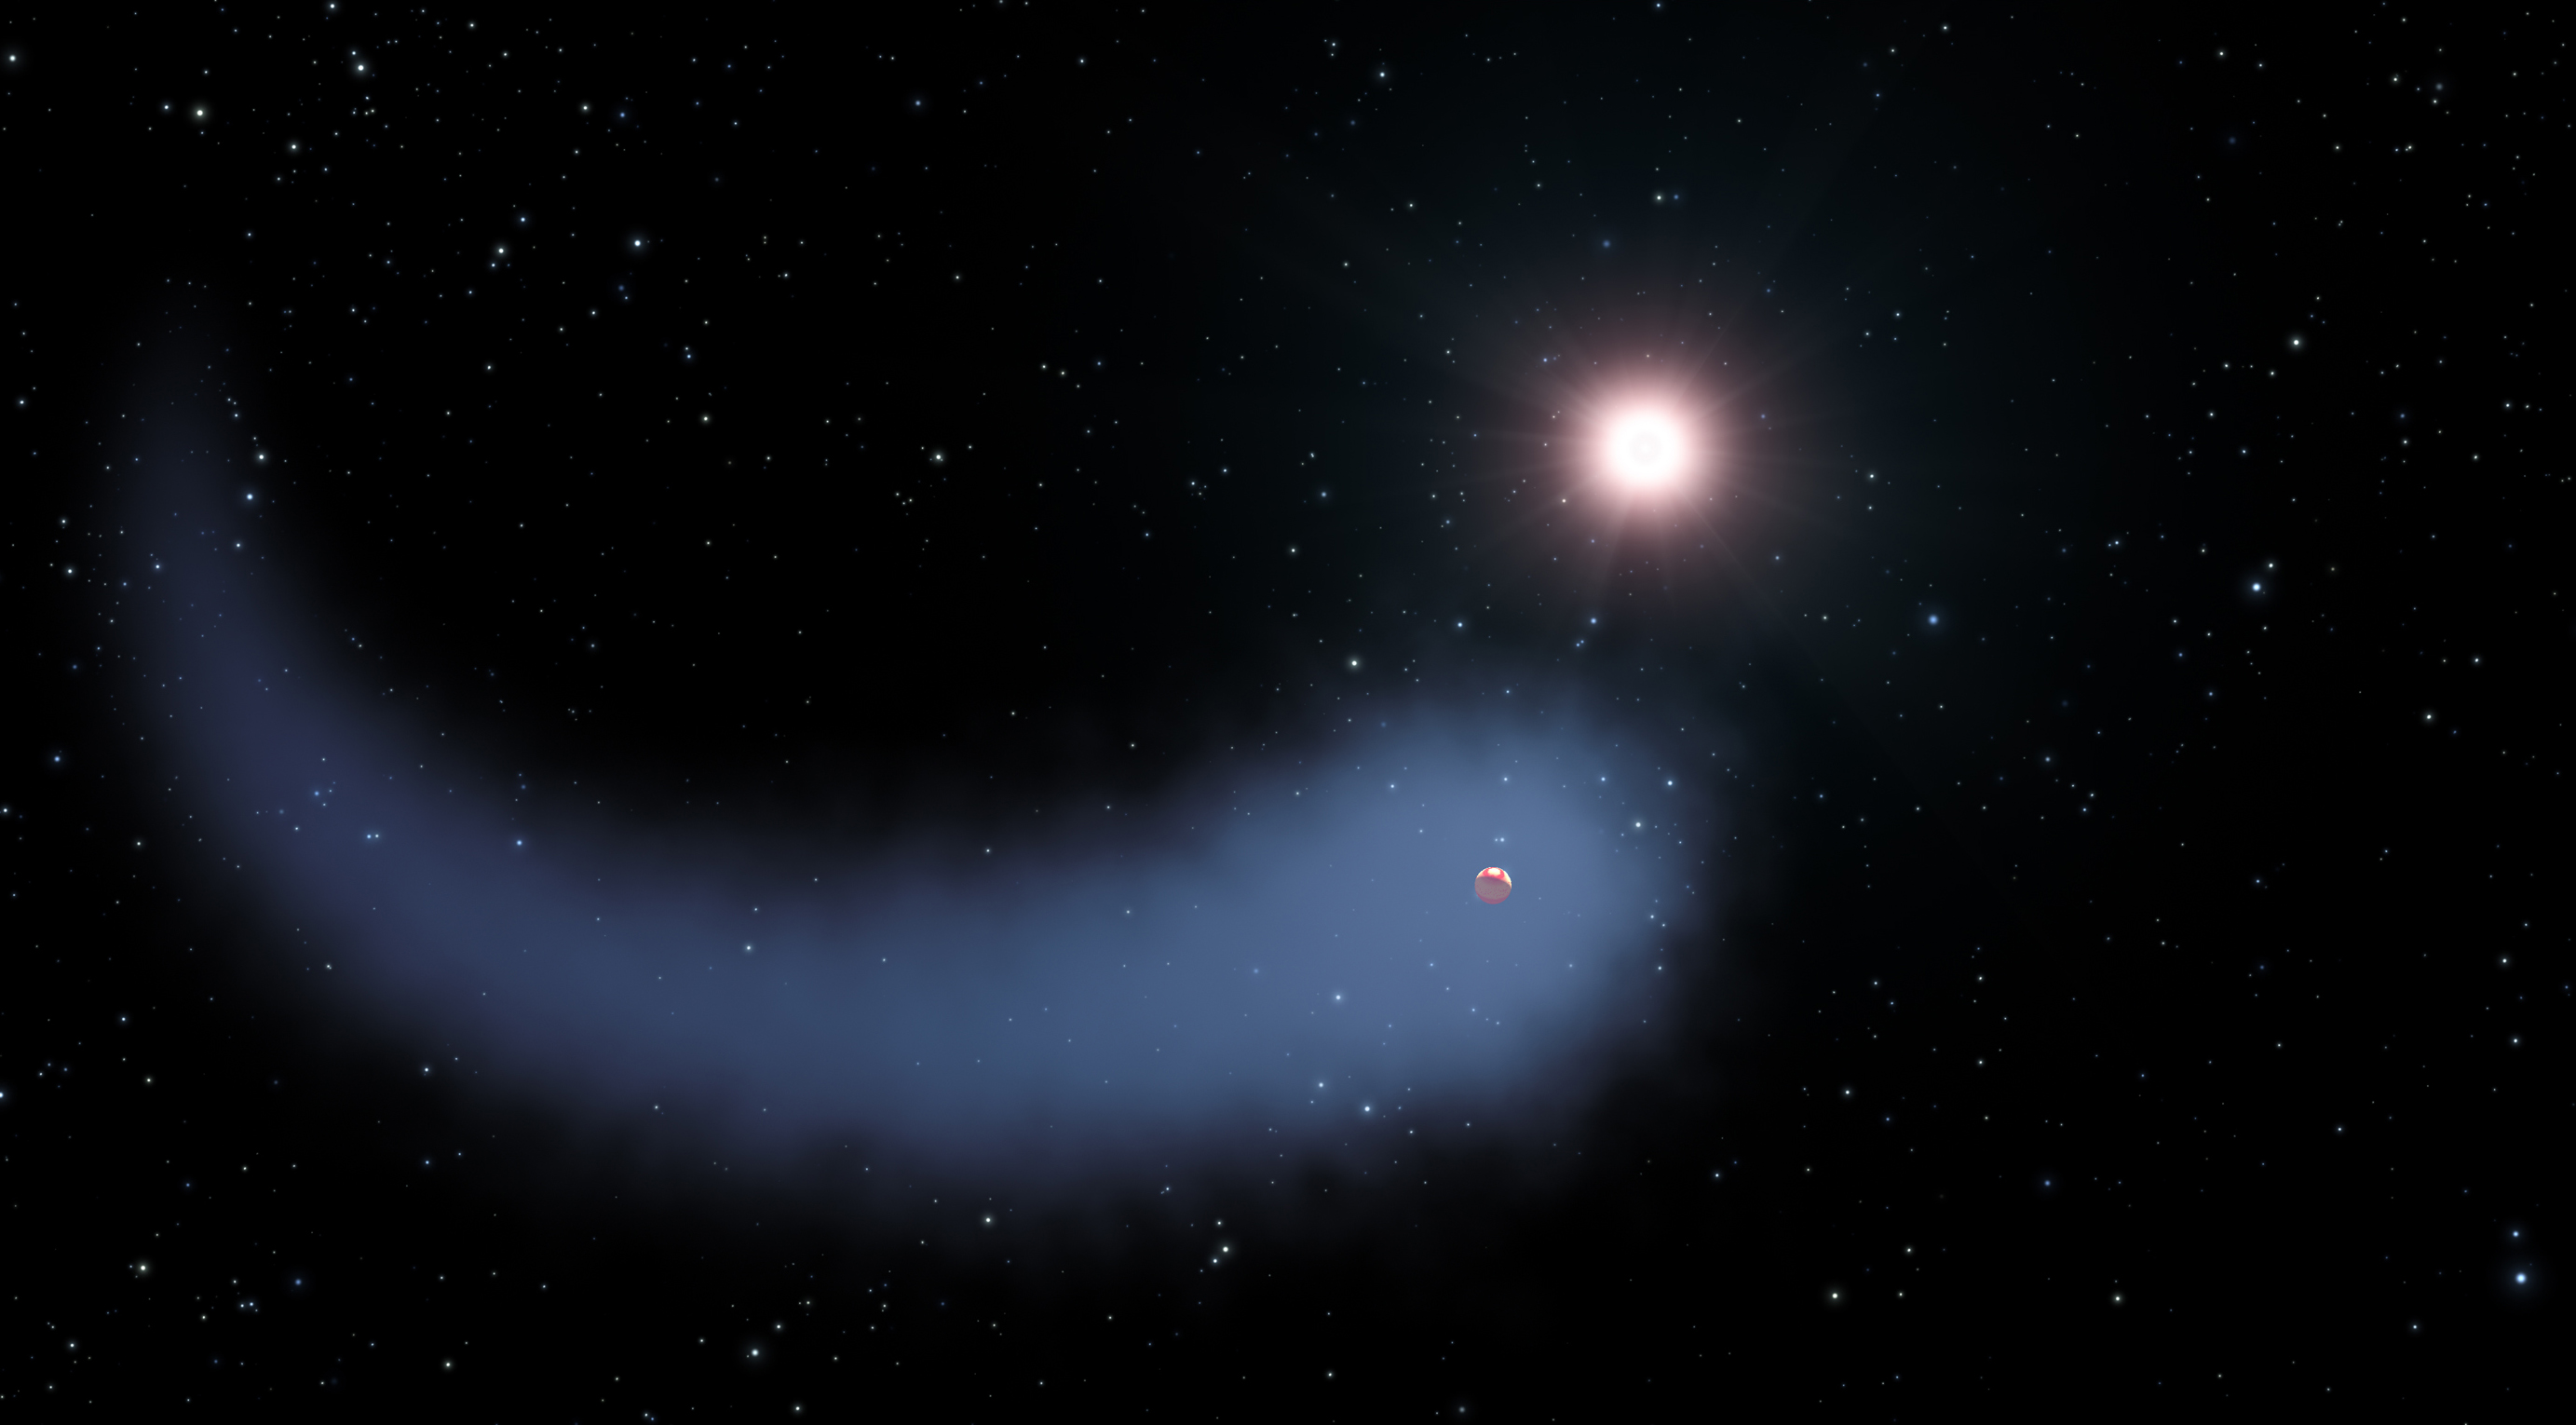 Hubble Sees 'Behemoth' Atmospheric Tail Bleeding from Warm Exoplanet